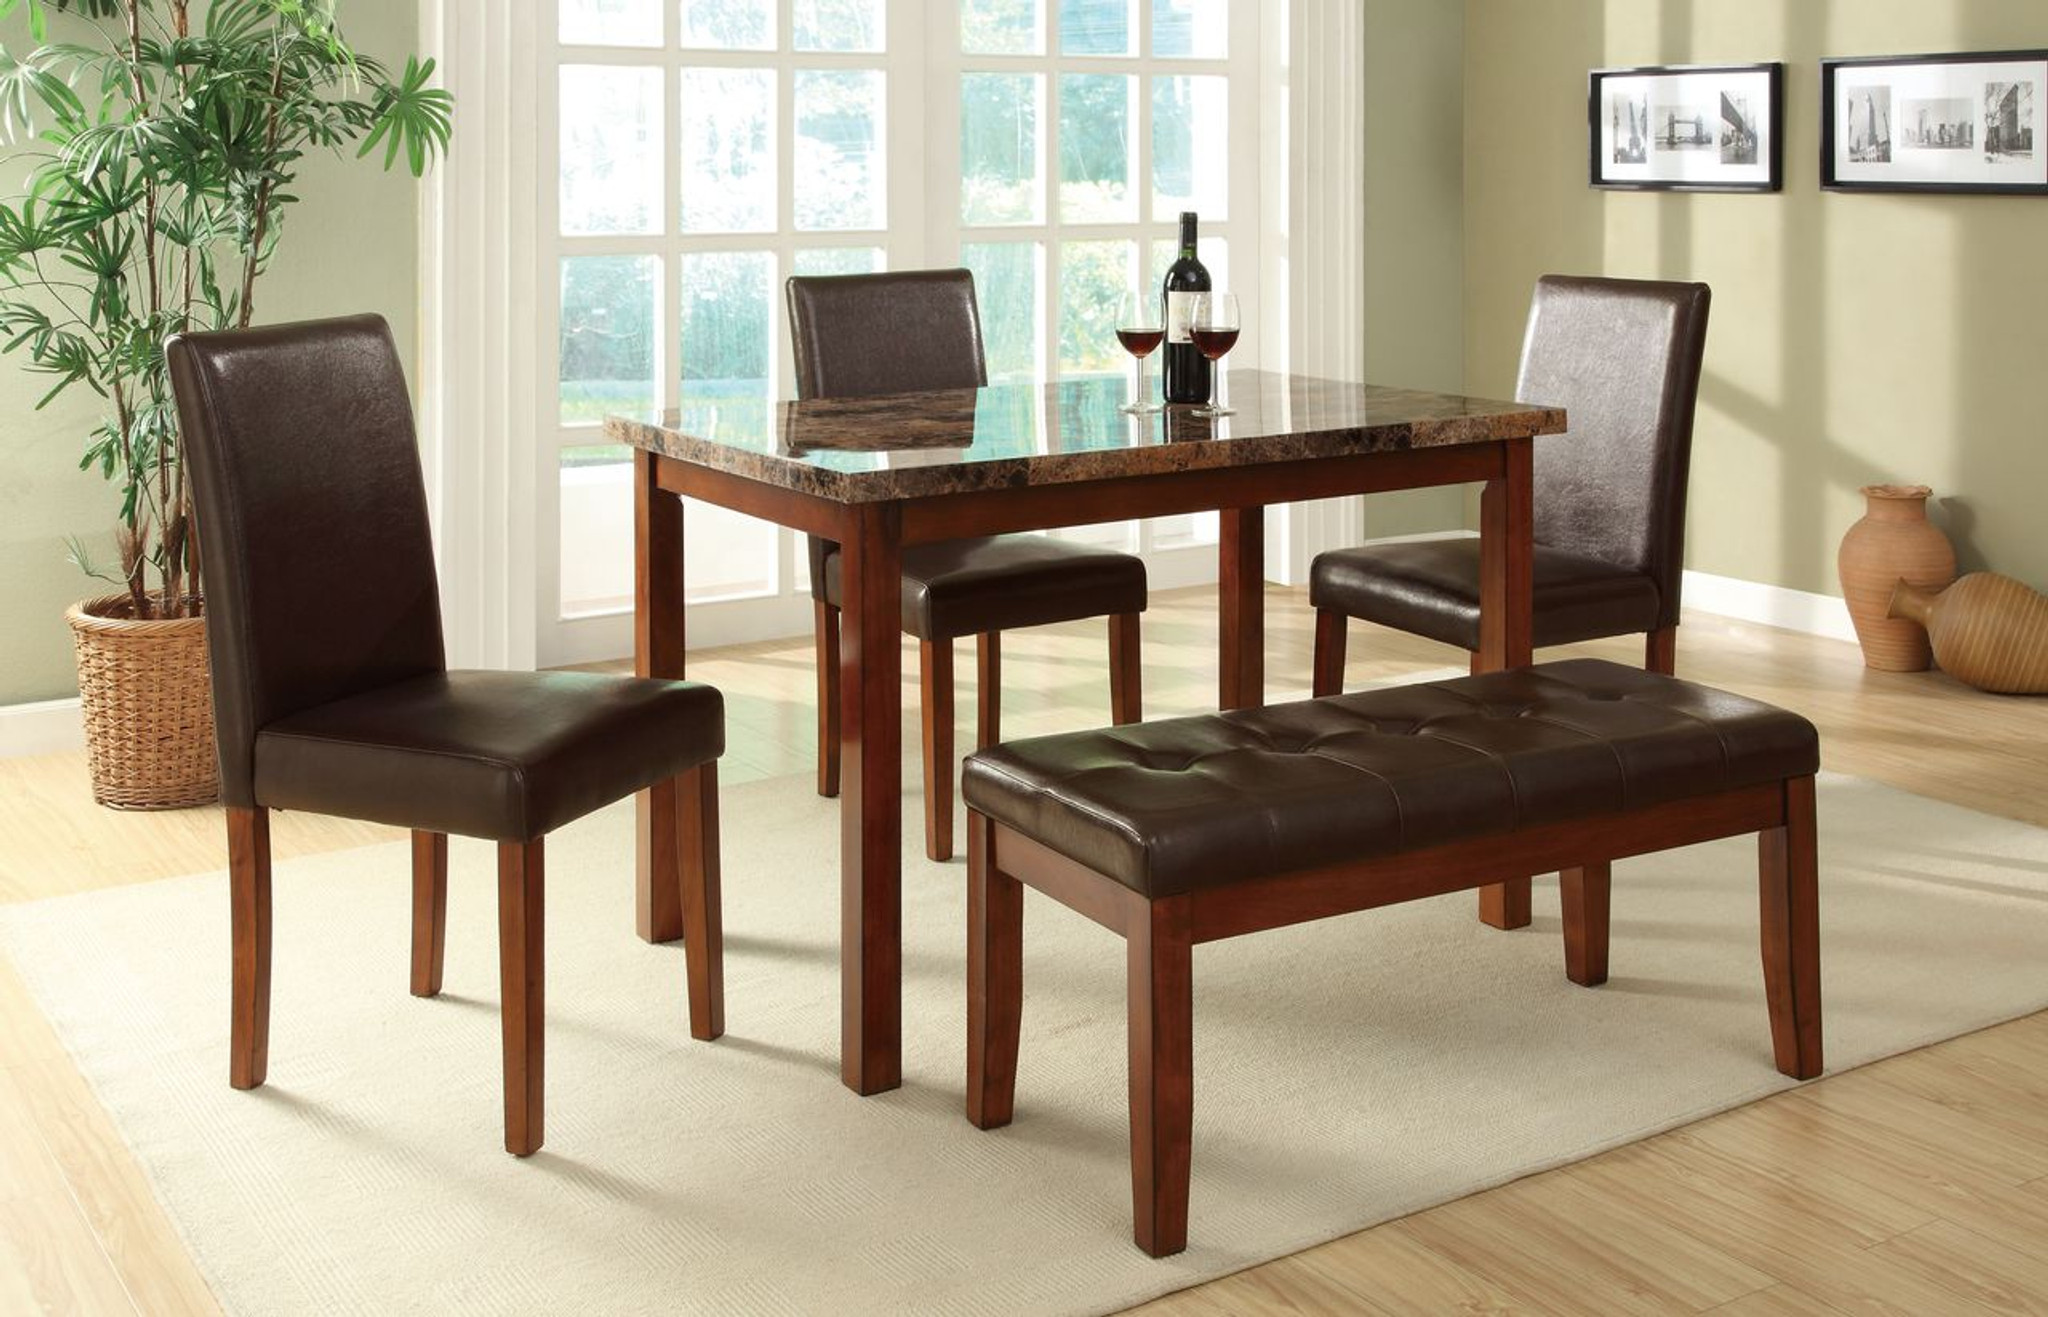 5-PIECES MARBLE FINISH TABLE TOP BROWN FAUX LEATHER DINING ROOM SET